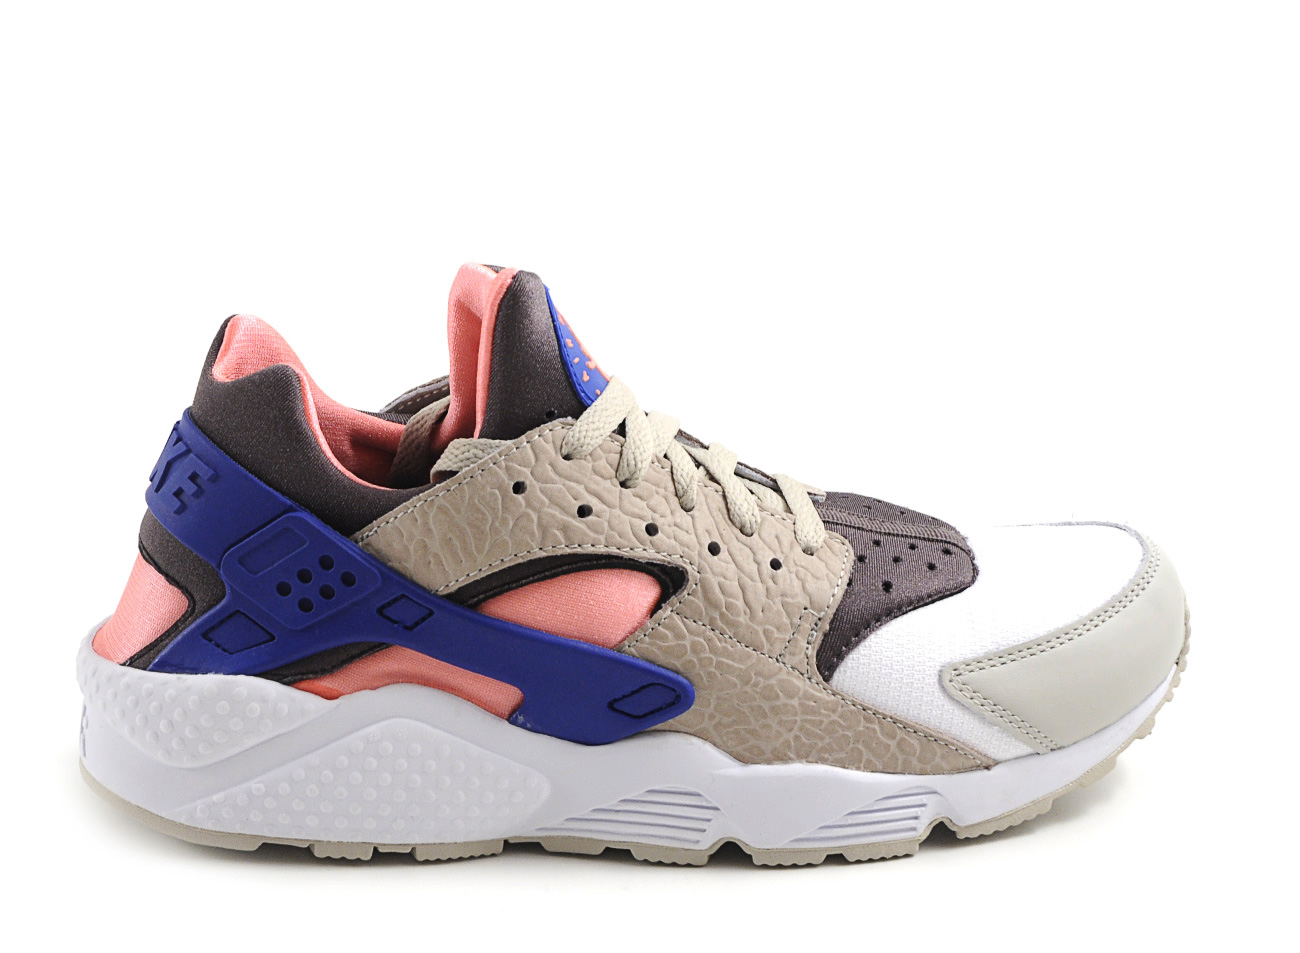 nike nsw air huarache size grey pink blue in multicolor. Black Bedroom Furniture Sets. Home Design Ideas